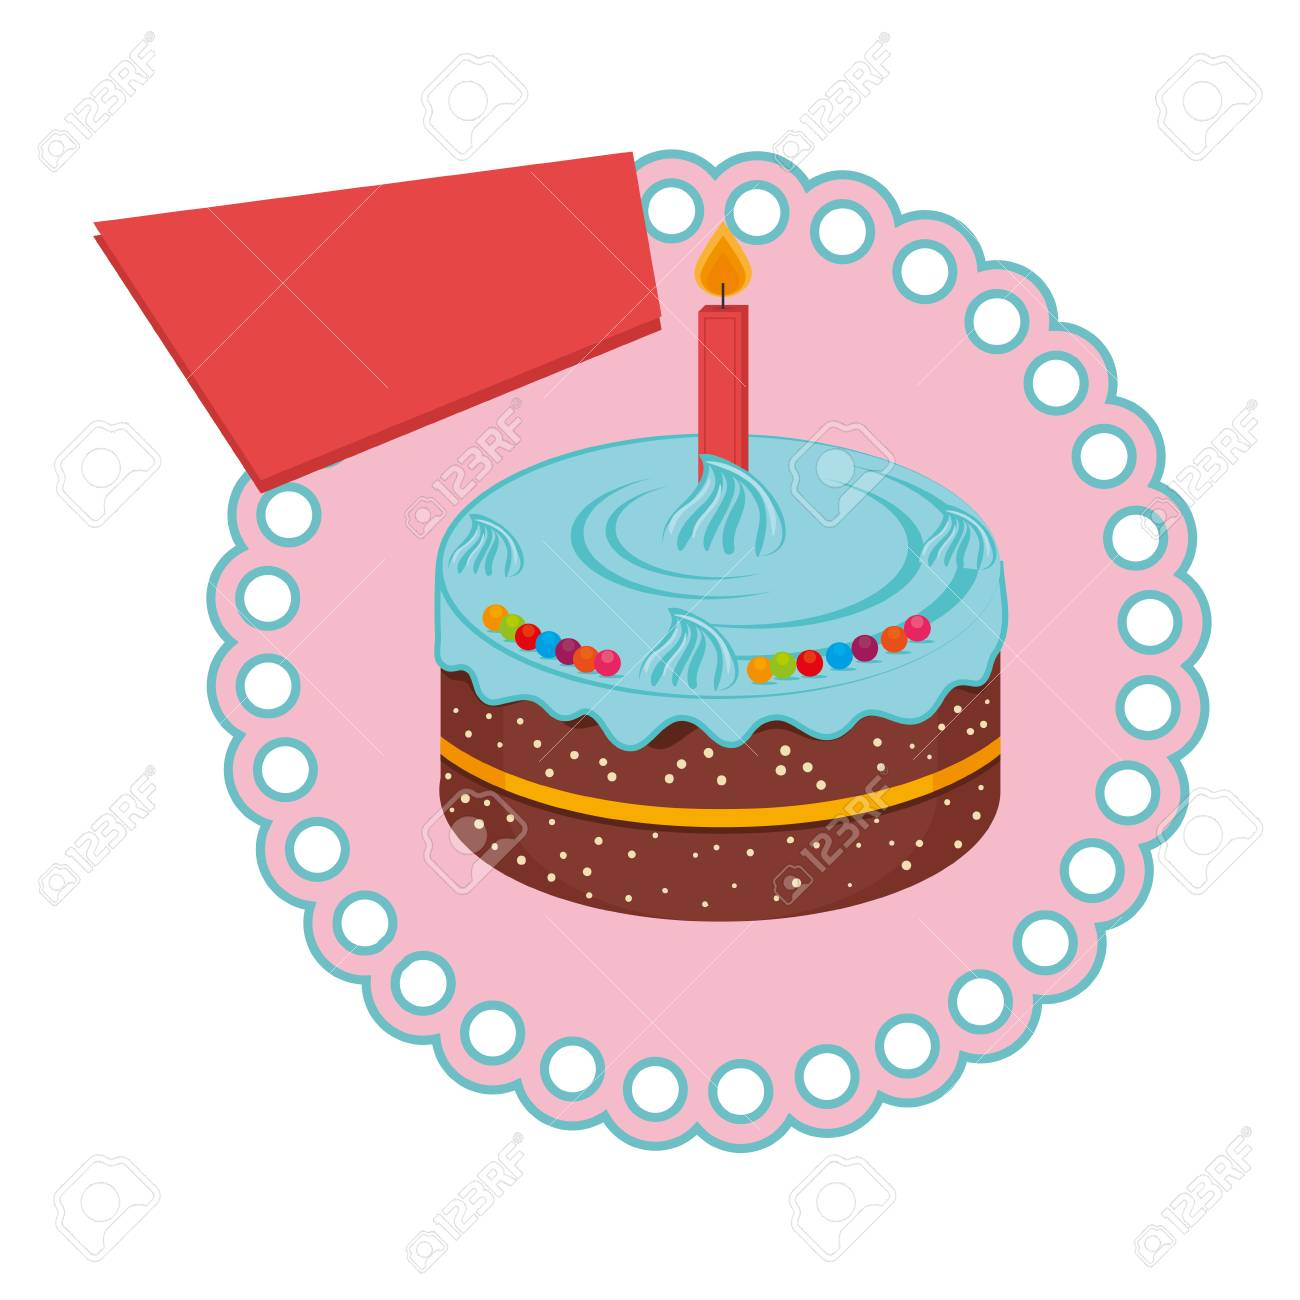 Circular Frame With Birthday Cake With Candle Vector Illustration